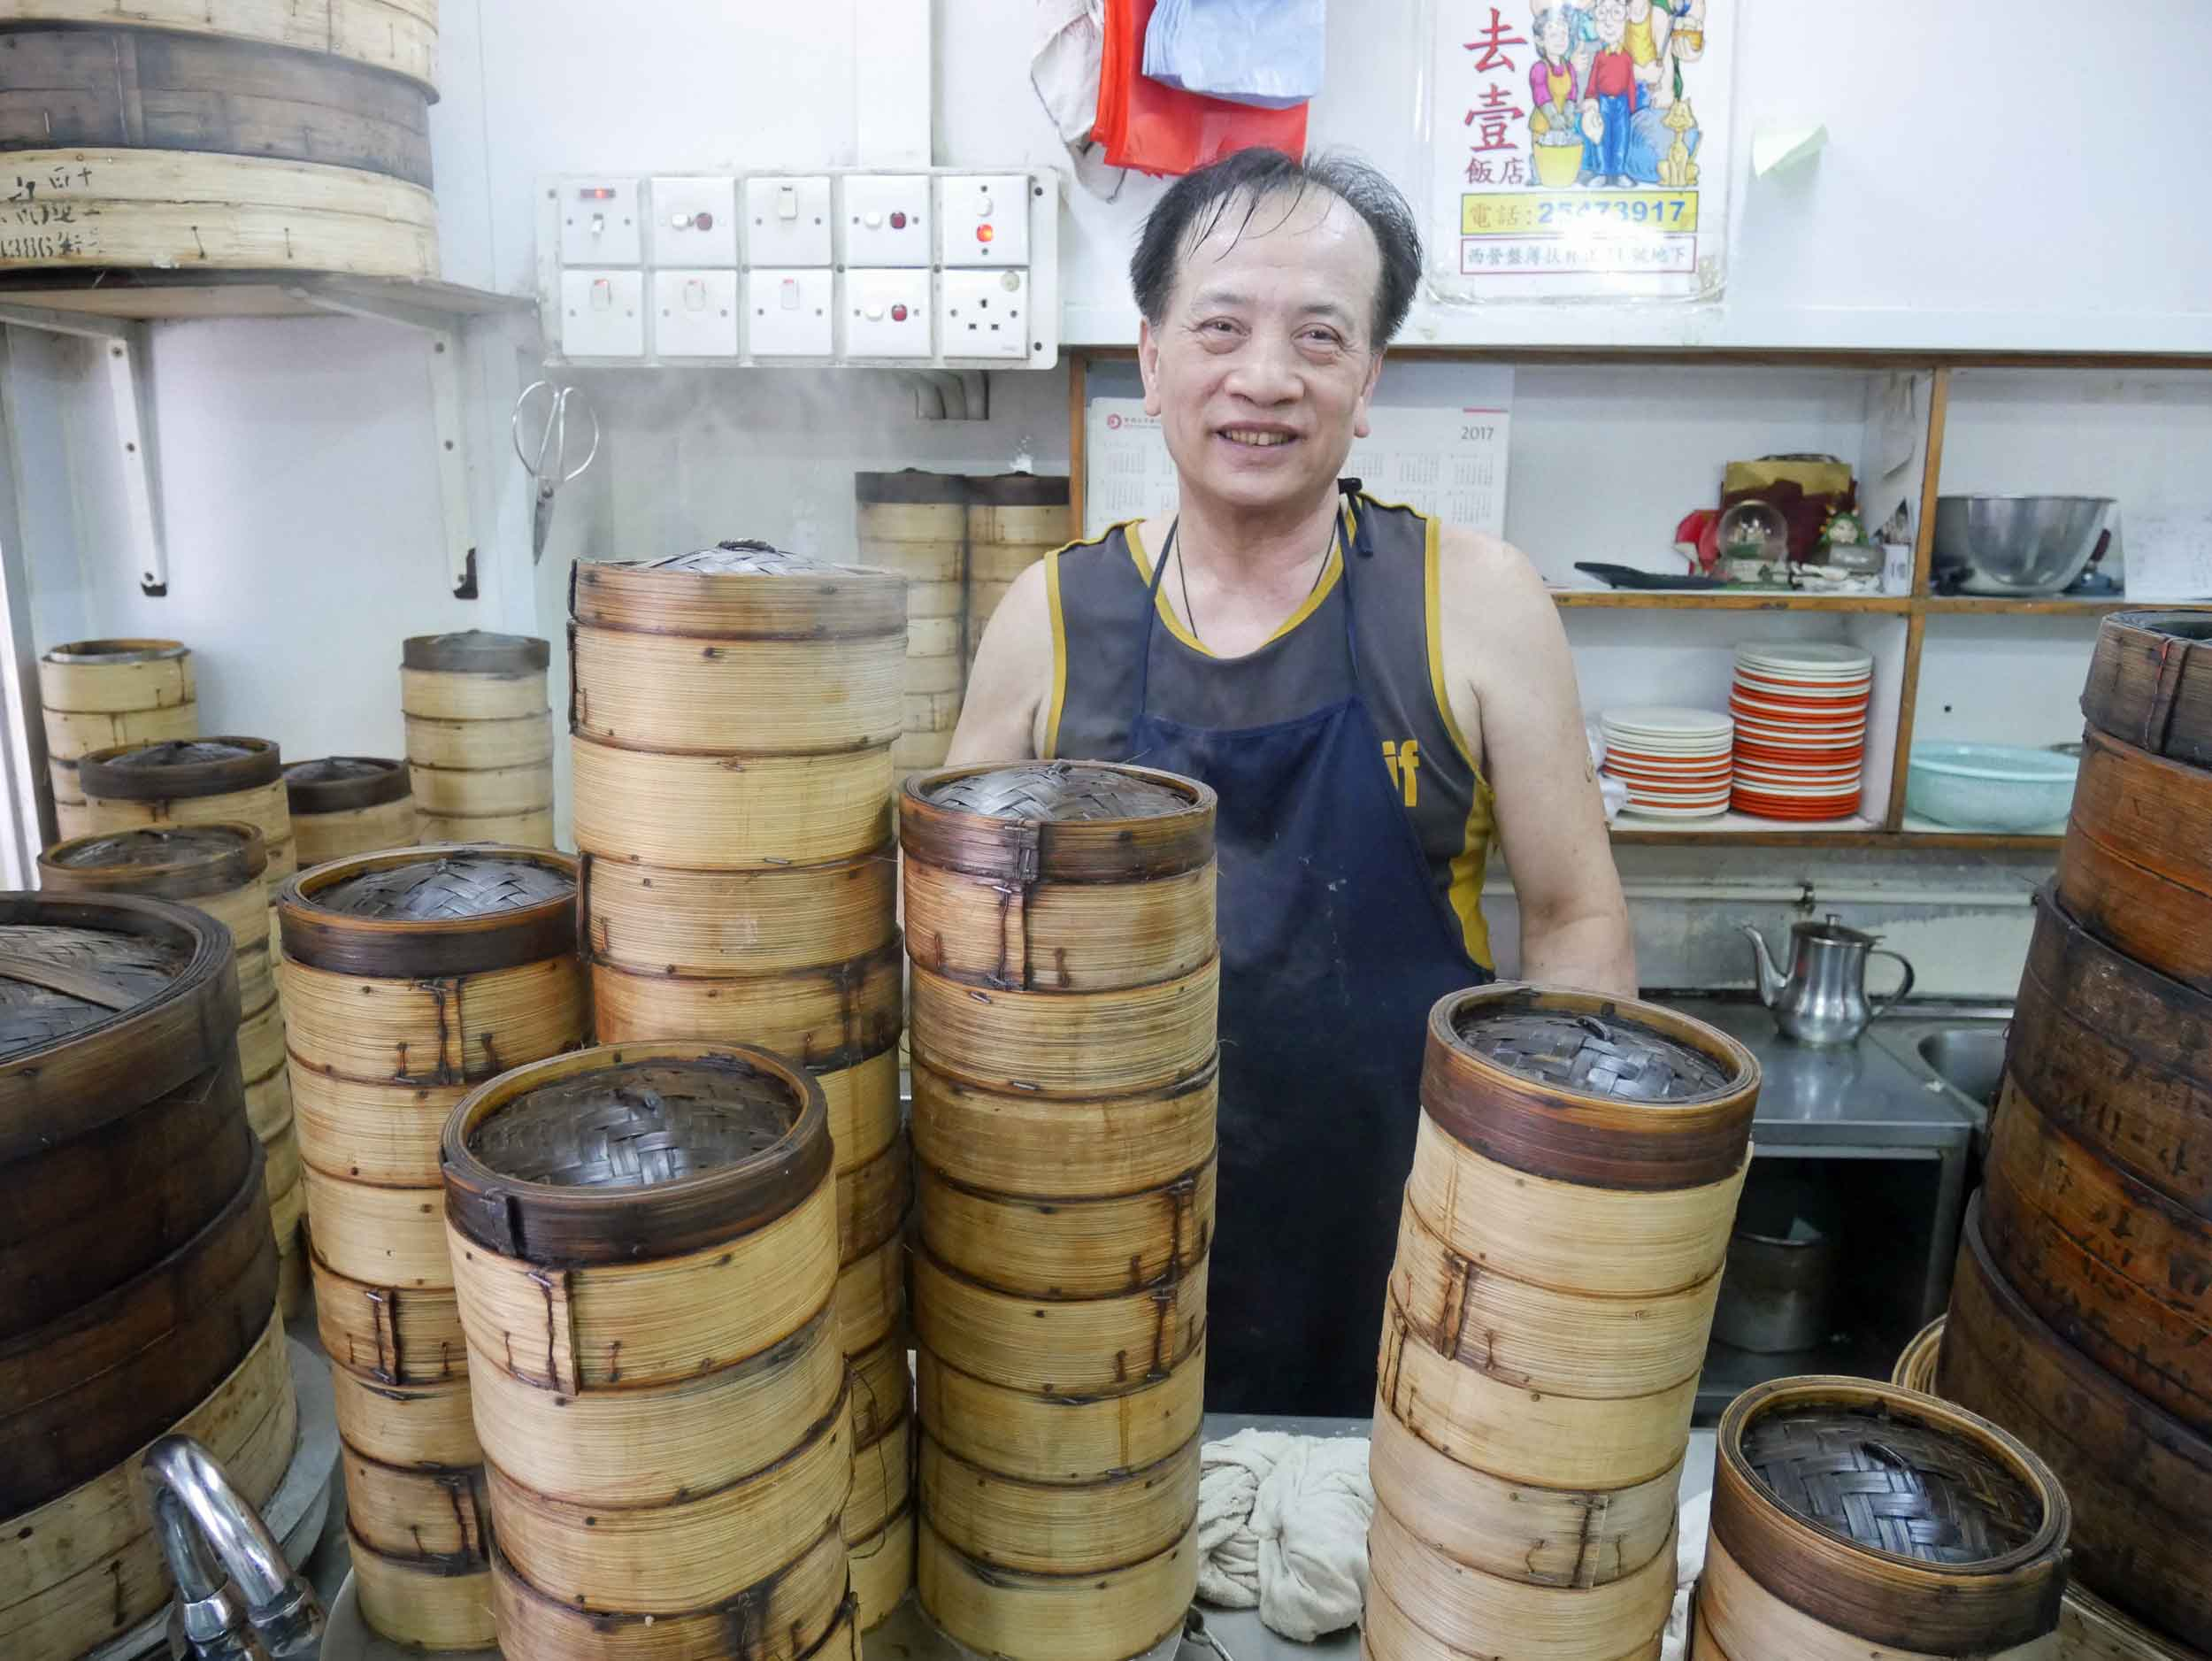 The friendly (and steaming) dumpling man at Sam Hui Yat.